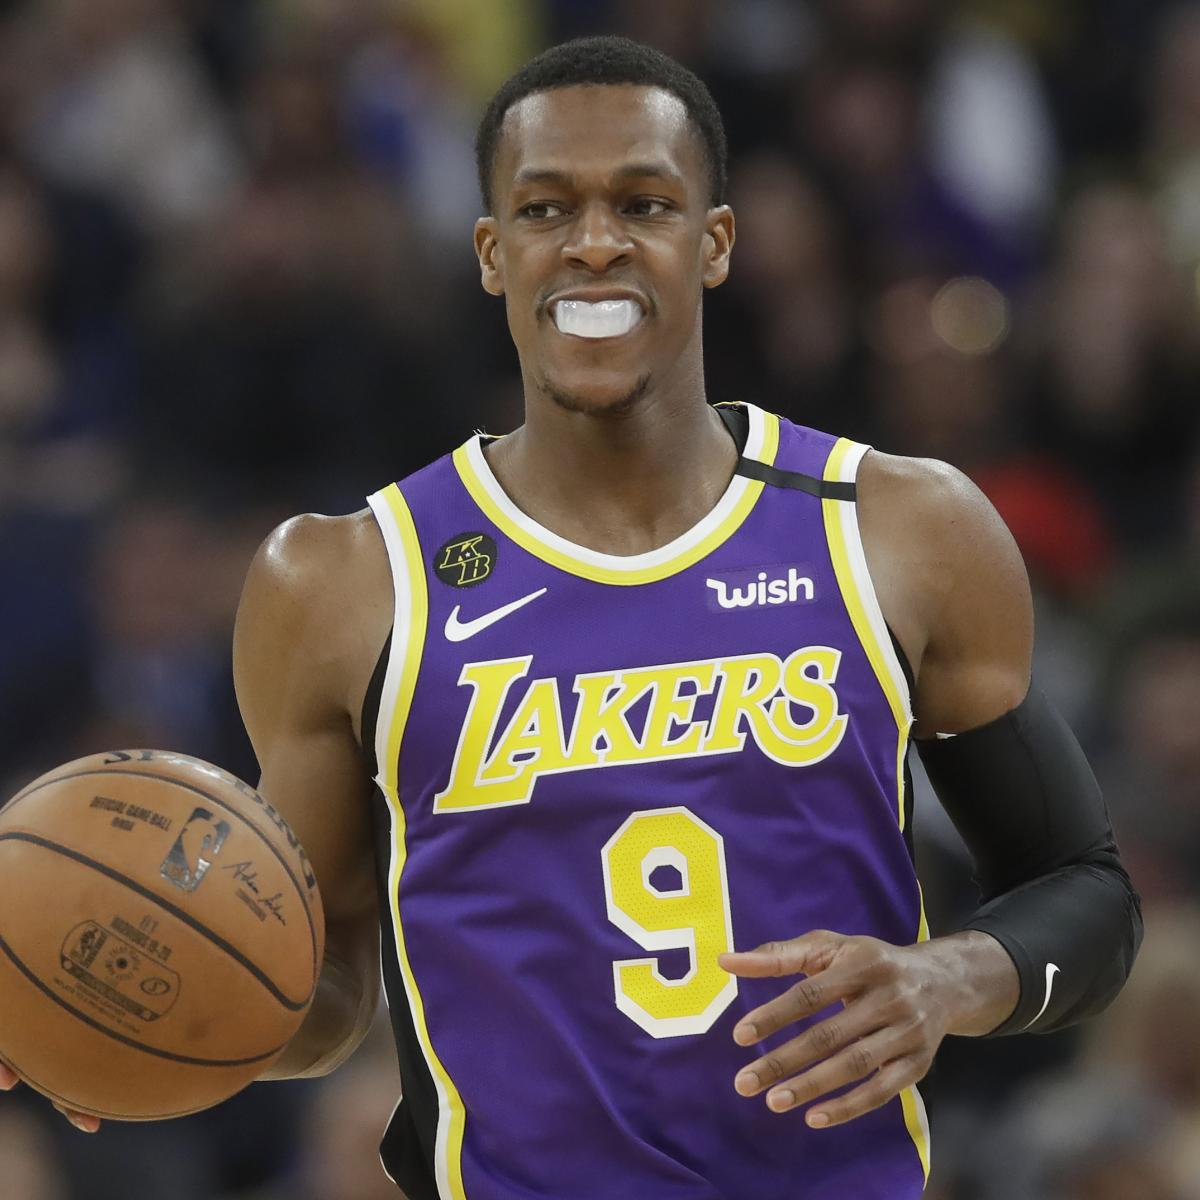 Clippers Rumors: Lakers' Rajon Rondo a Target in 2020 NBA Free Agency